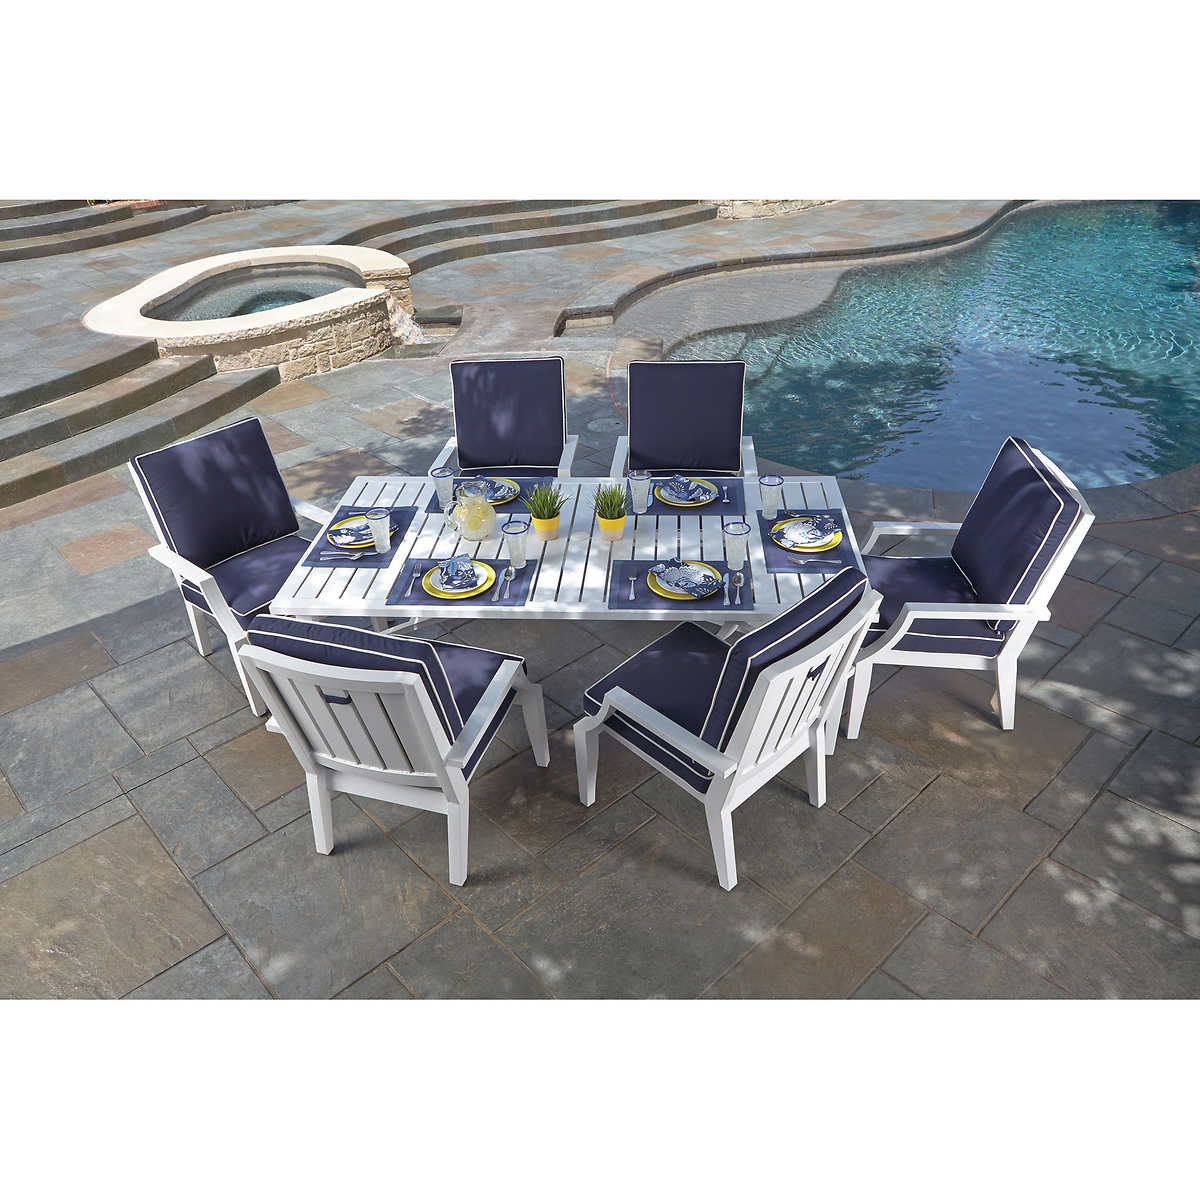 Castlecreek 3 Piece Patio Bistro Dining Set Bar Cheap Patio Furniture Bistro Set Patio Table